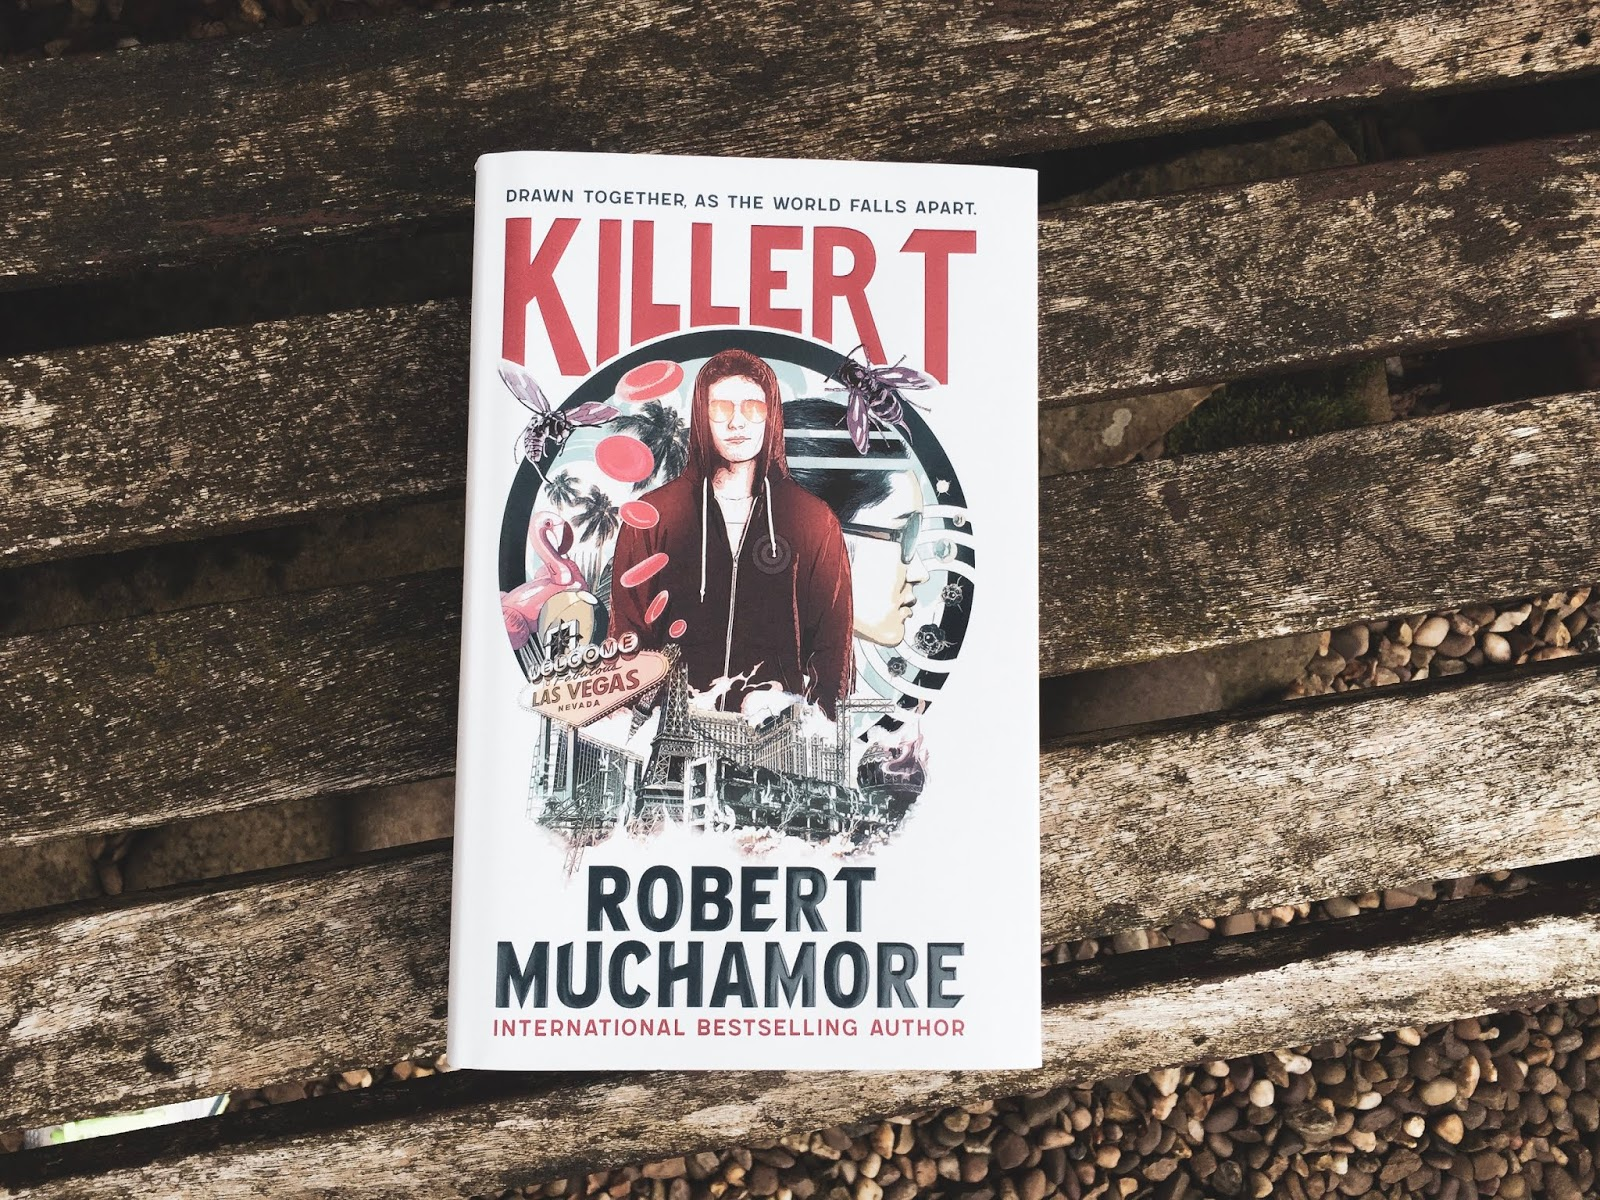 killer t, hot key books, robert muchamore, cherub, ya reads, young adult, gene editing, gene therapy, designer babies, dna, science